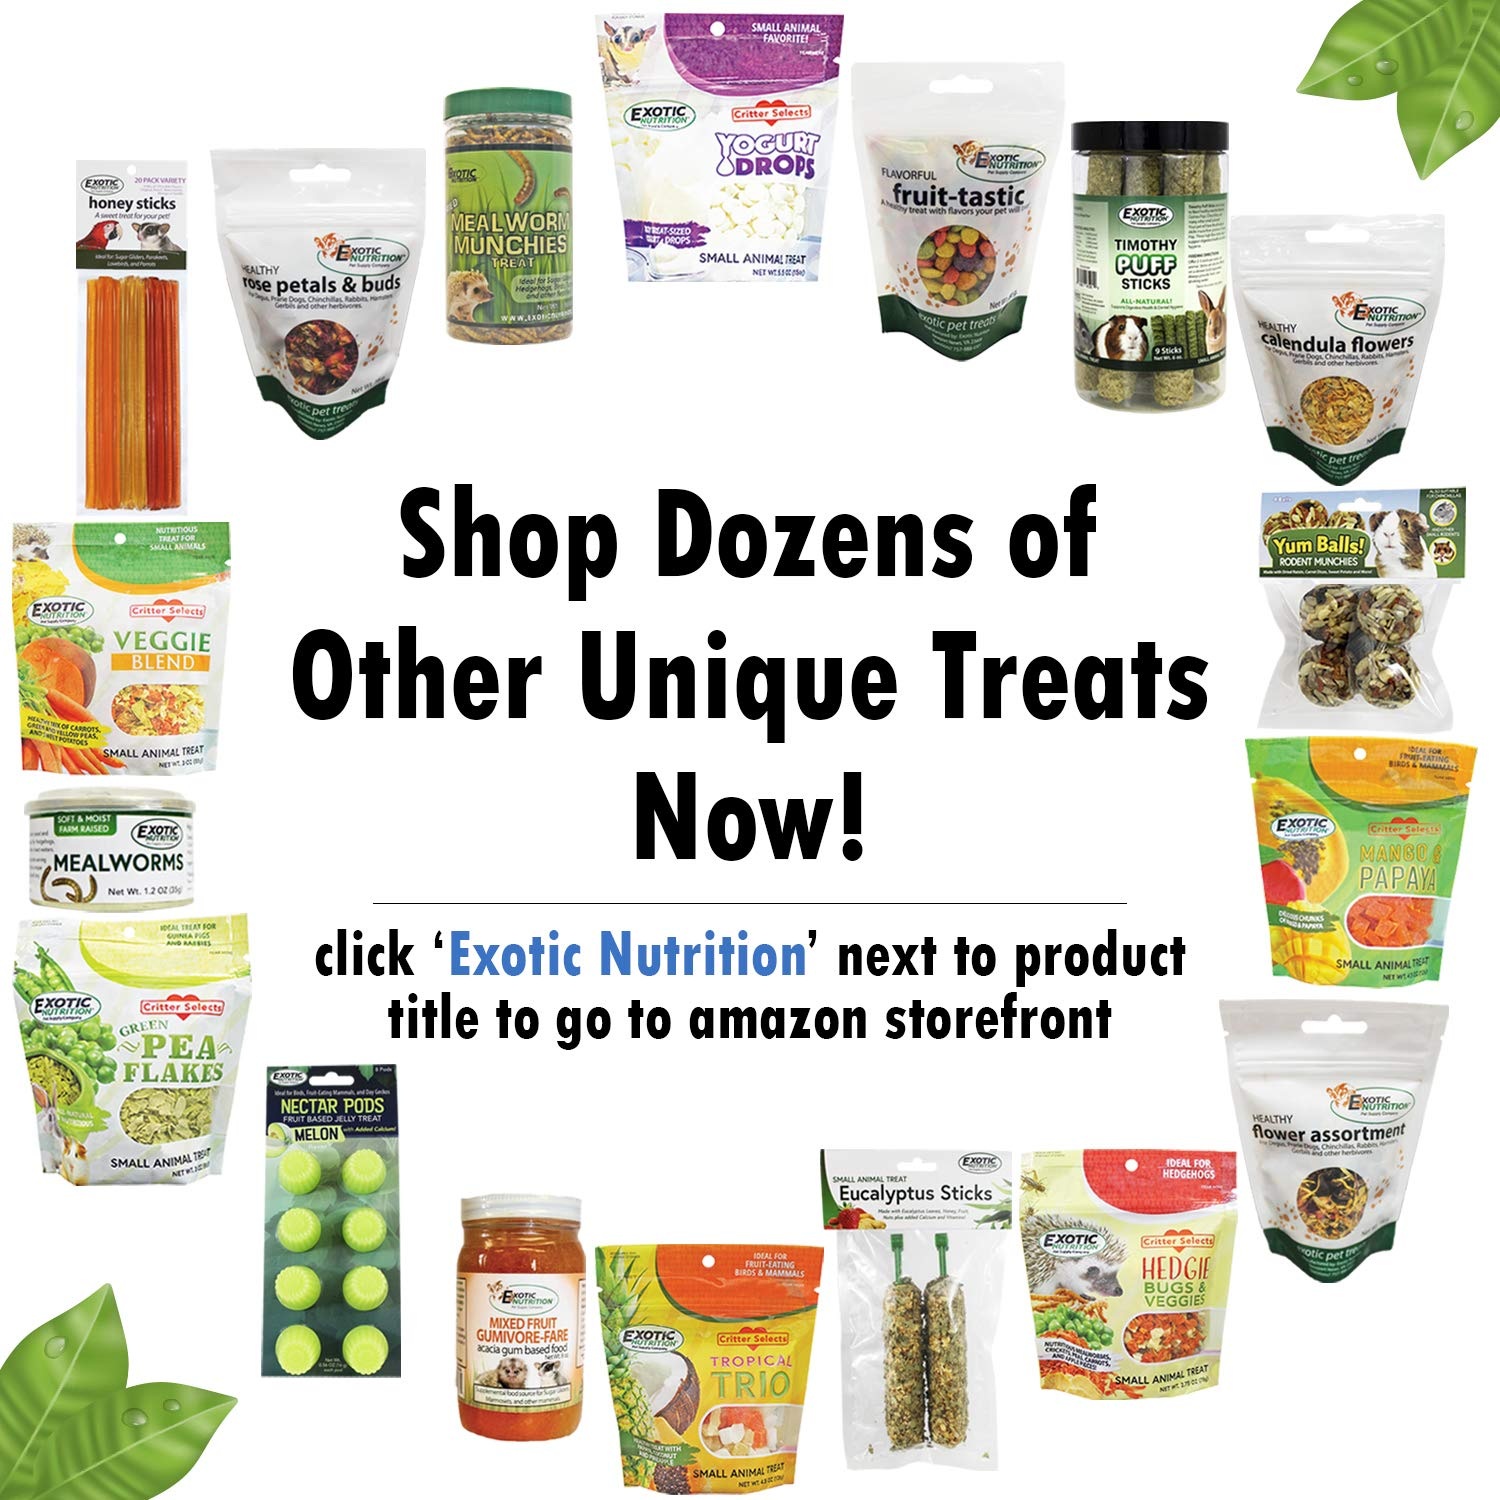 Exotic Nutrition Herbivore Treat Variety Pack - for Guinea Pigs, Rabbits, Chinchillas, Squirrels, Hamsters, Prairie Dogs, Degus